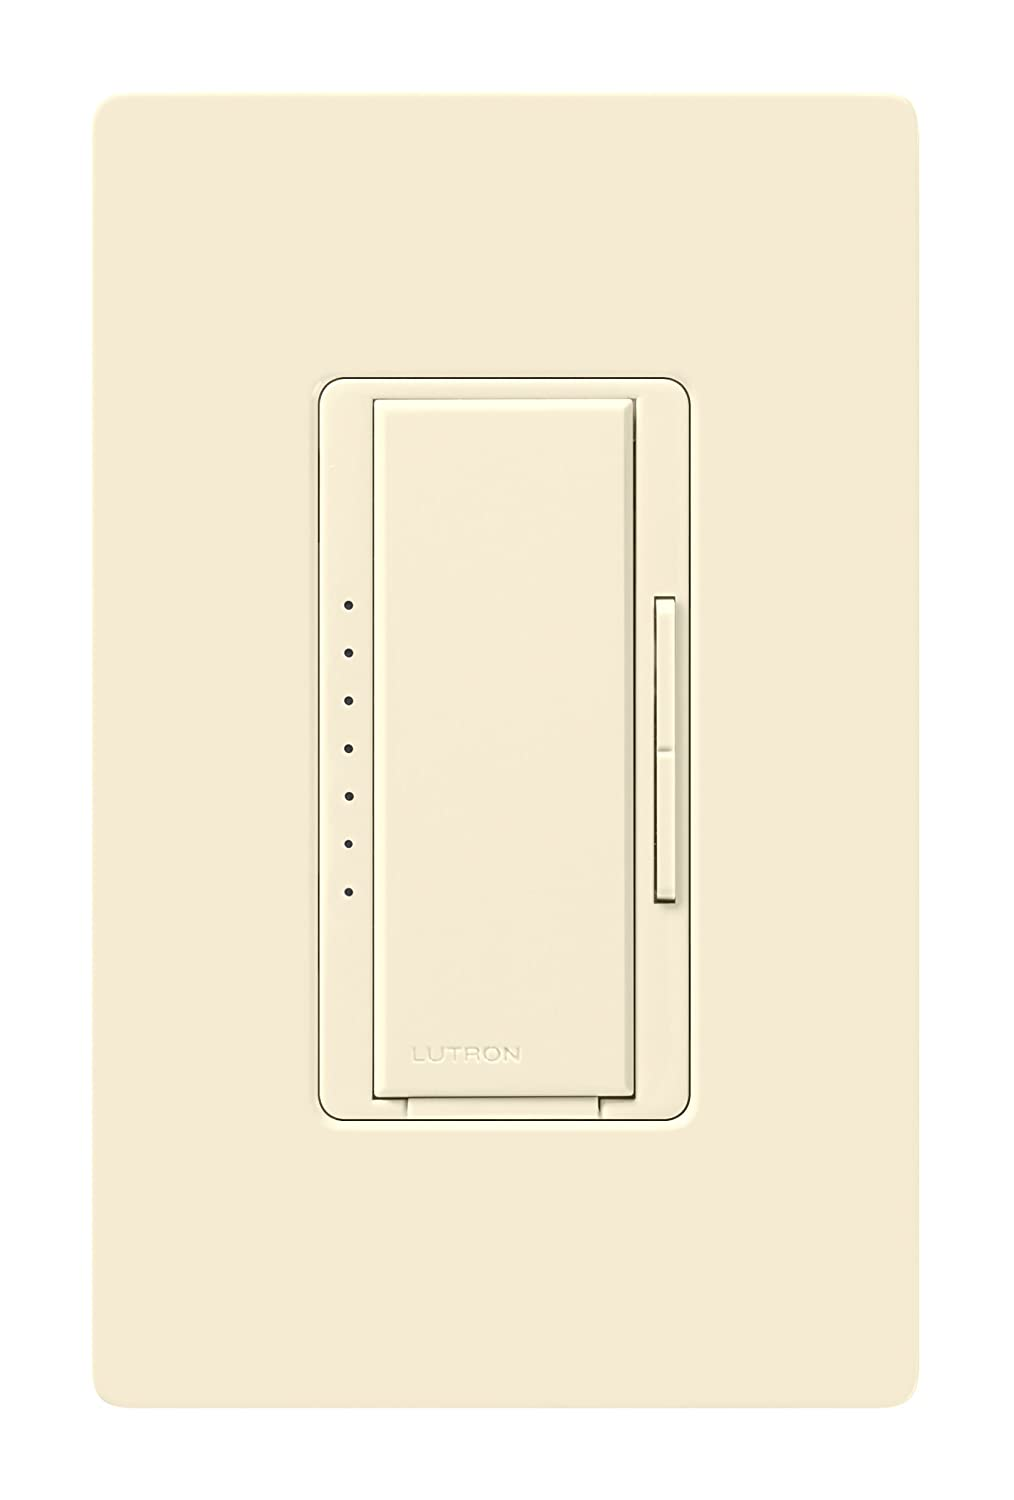 Lutron Maestro C.L Dimmer Switch for Dimmable LED, Halogen & Incandescent Bulbs, Single-Pole or Multi-Location, MACL-153M-LA, Light Almond